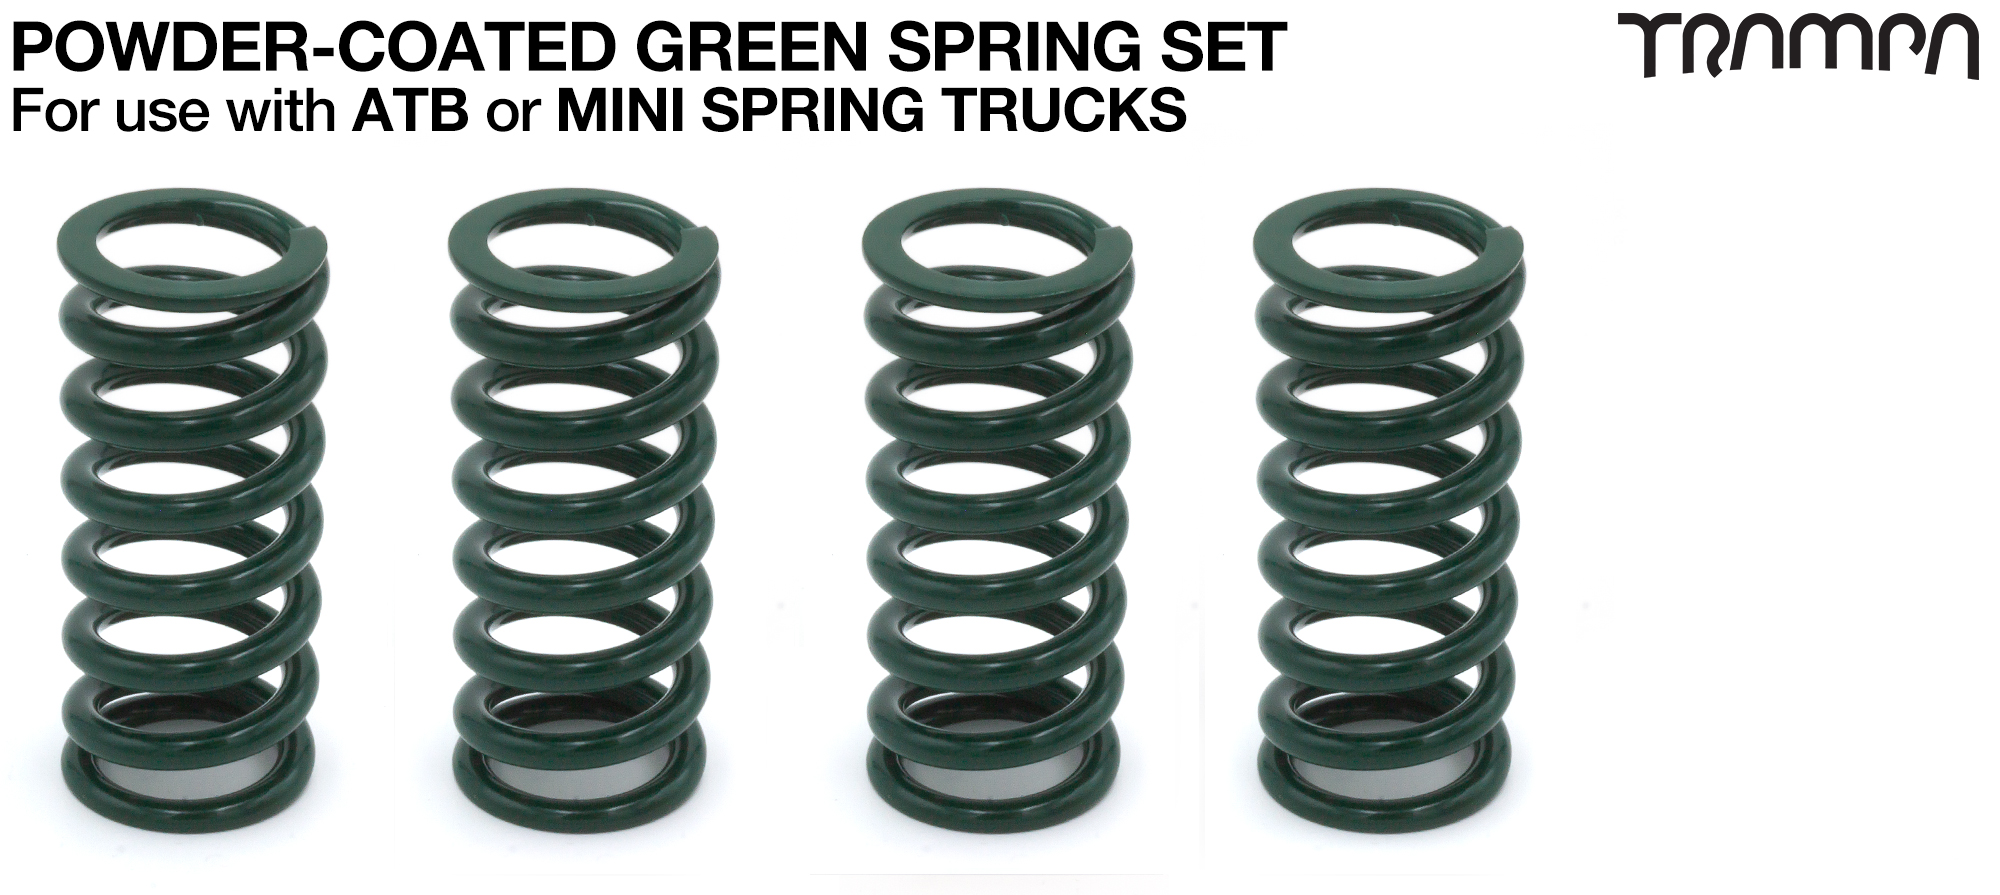 Powder Coated Springs - GREEN